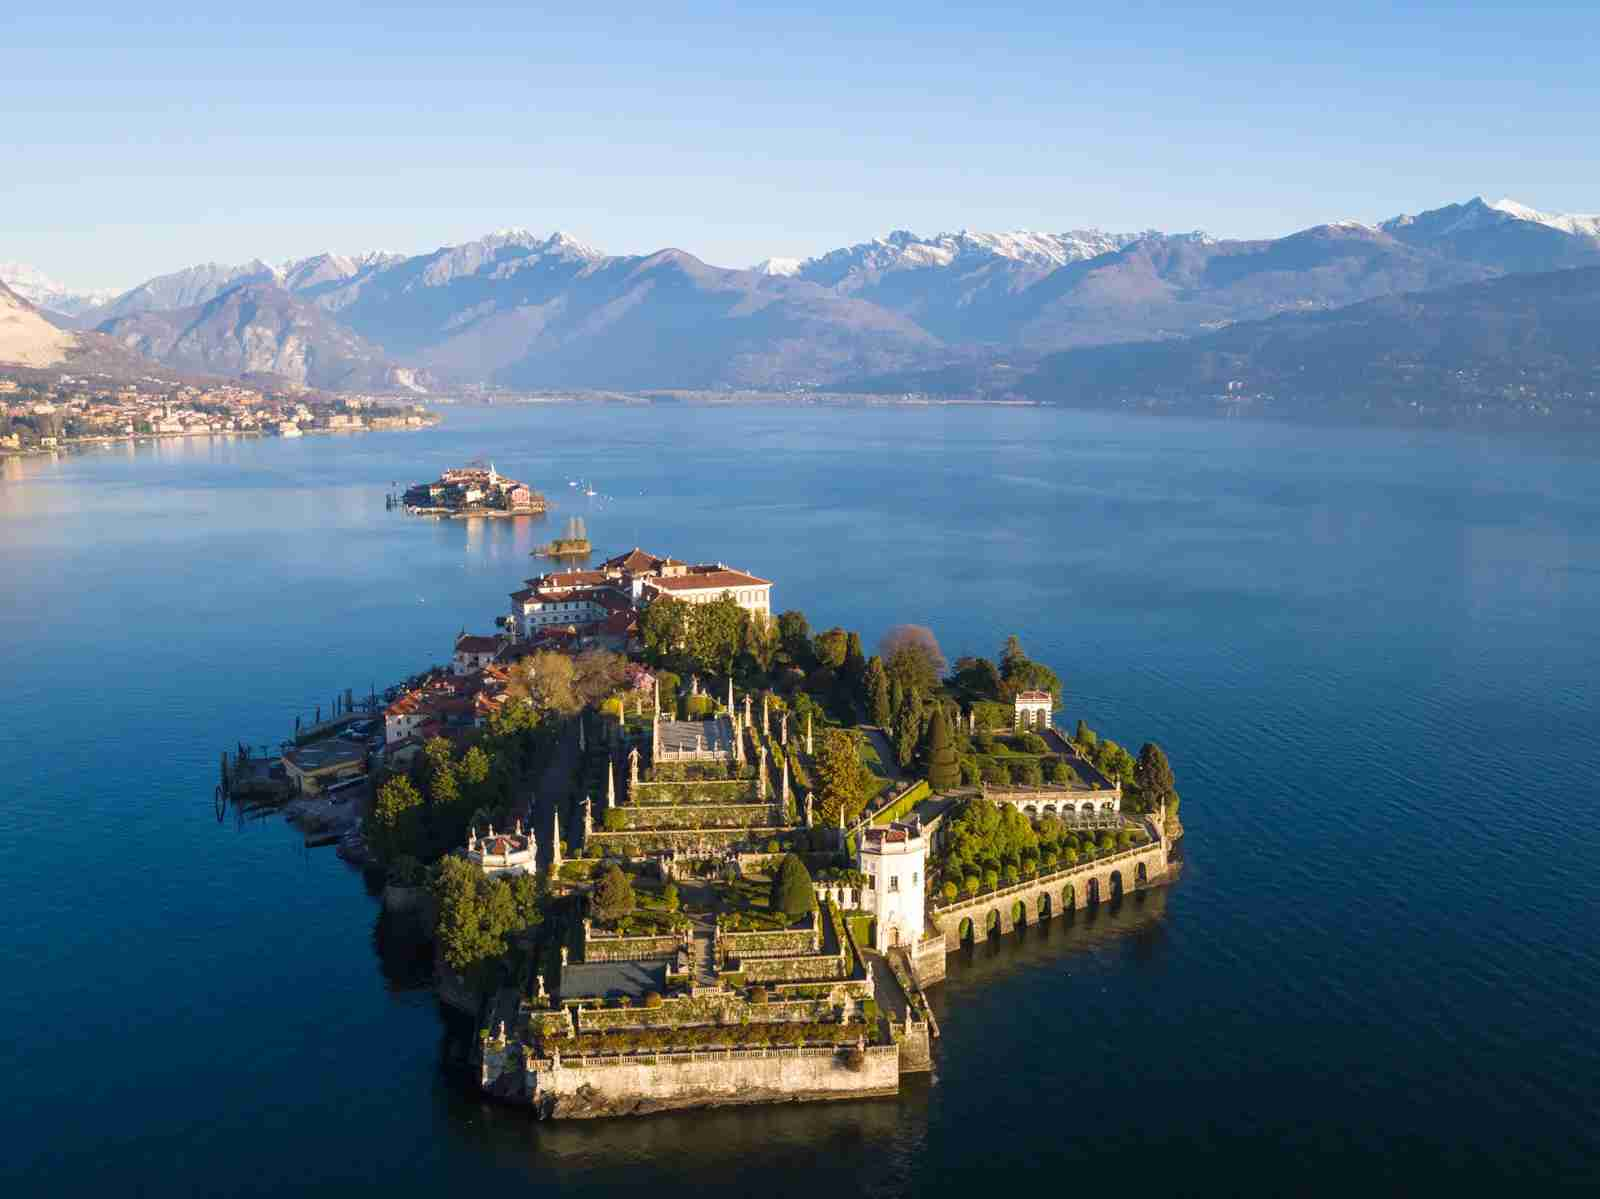 Lake Maggiore. (Photo by xenotar/Getty Images)